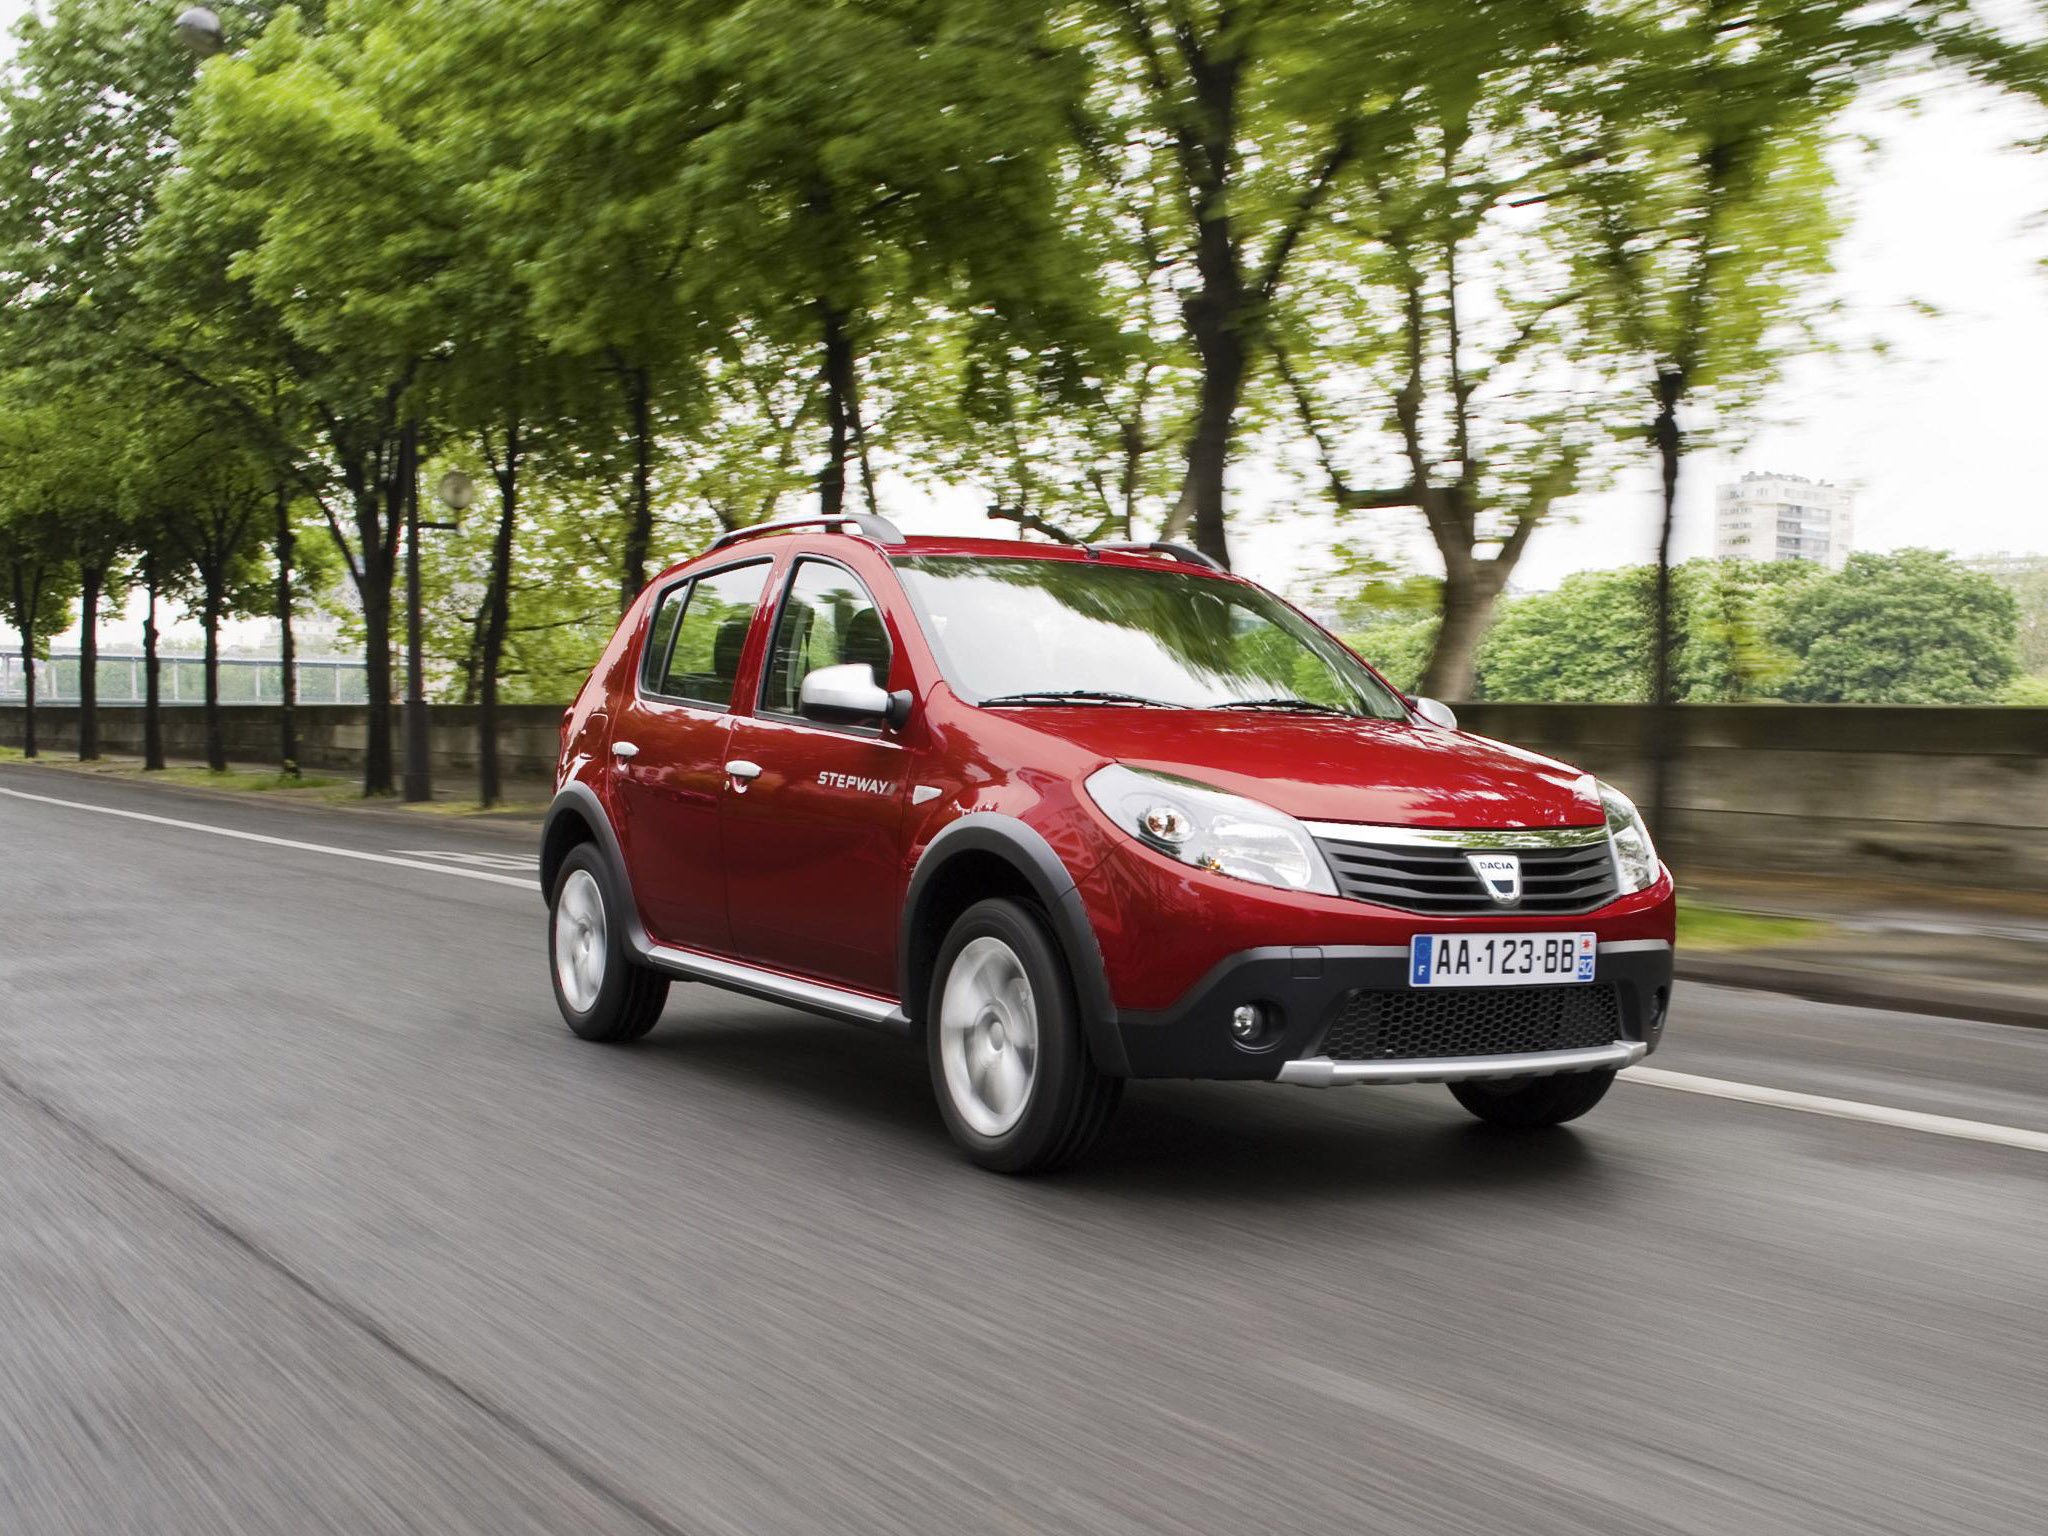 dacia sandero stepway 2009 dacia sandero stepway 2009 photo 13 car in pictures car photo gallery. Black Bedroom Furniture Sets. Home Design Ideas